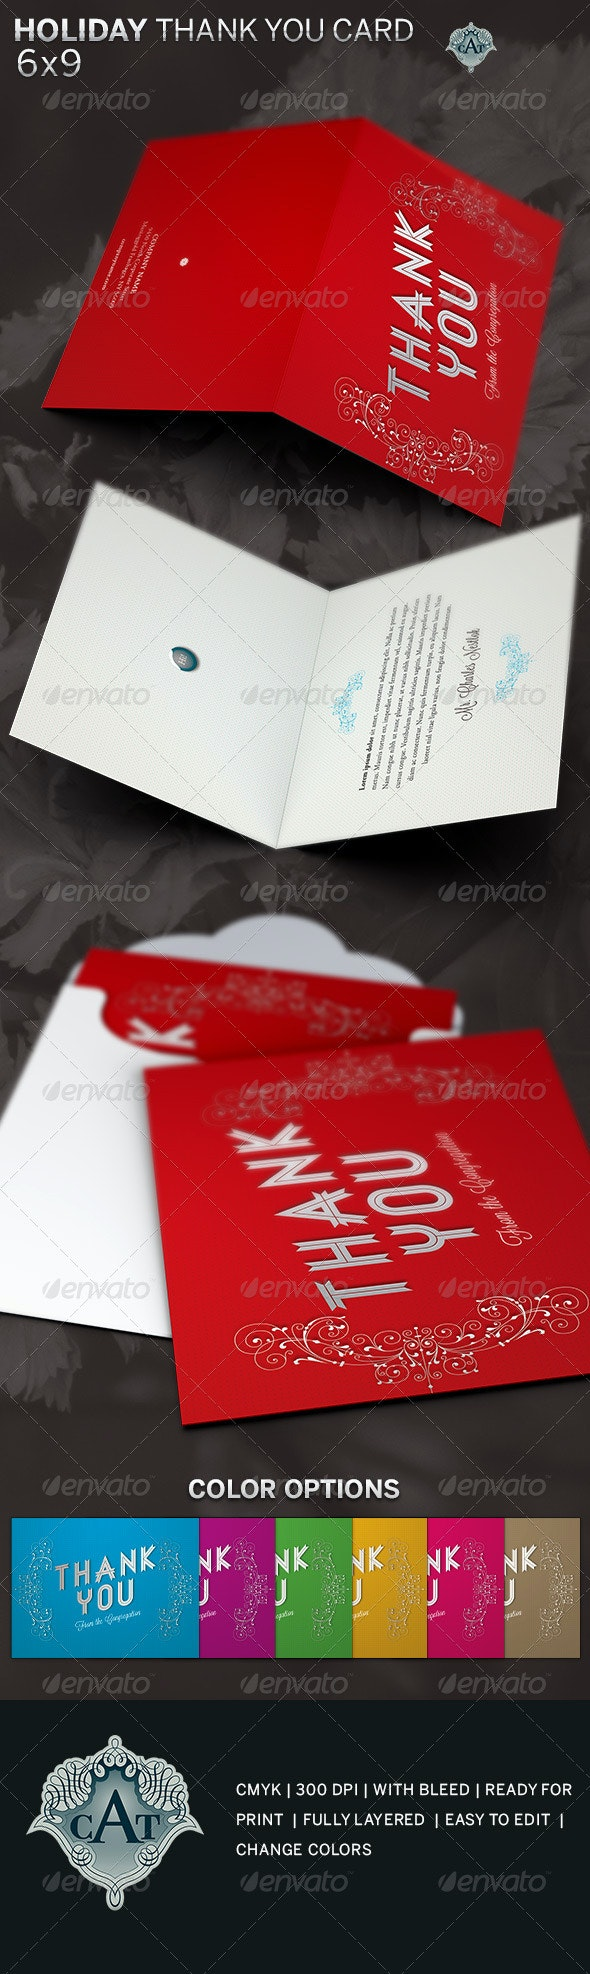 Holiday Thank You Card Template - Holiday Greeting Cards